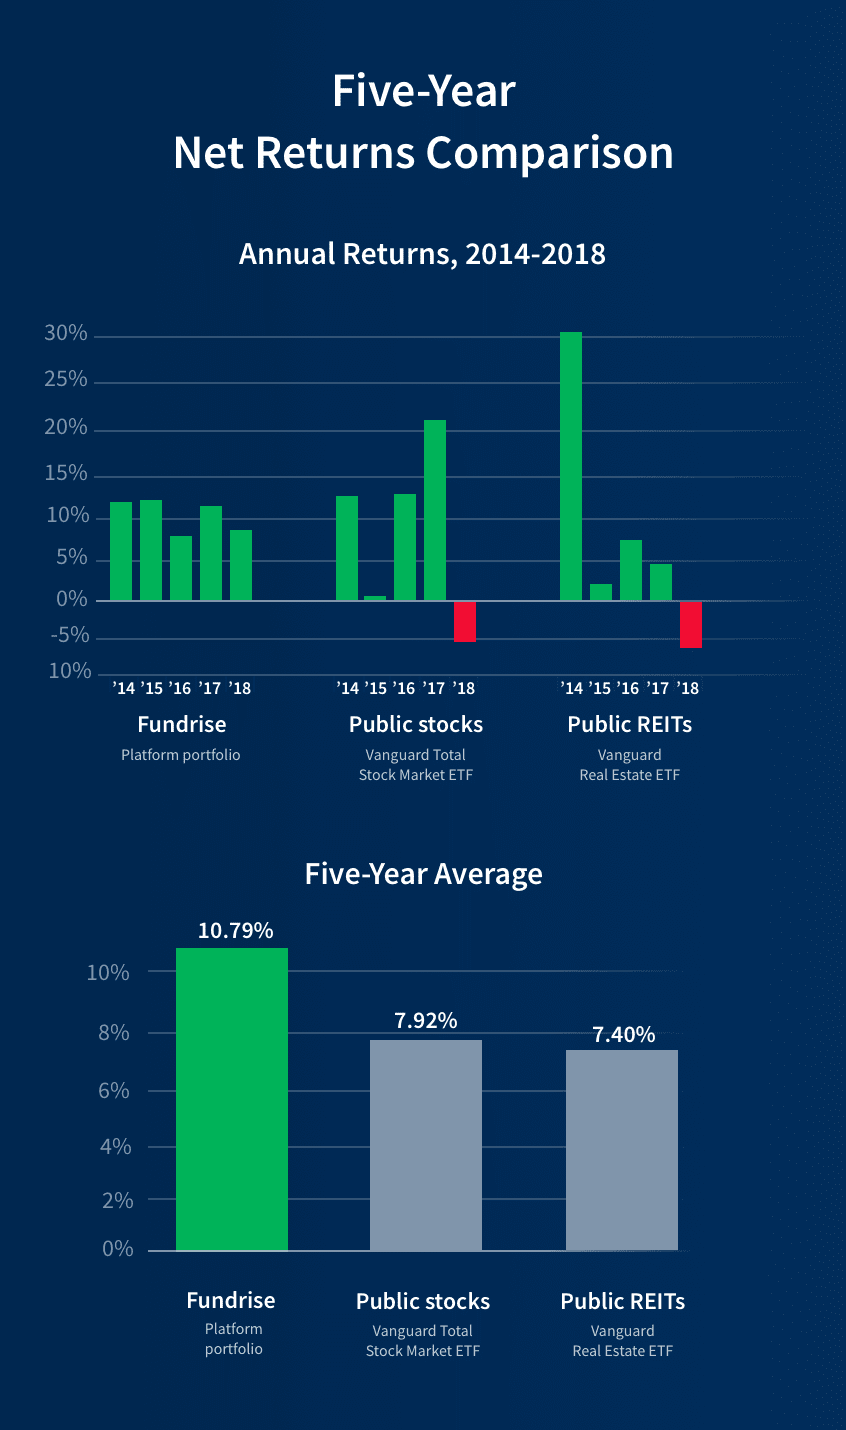 Fundrise Performance Compared To Stocks And REITs